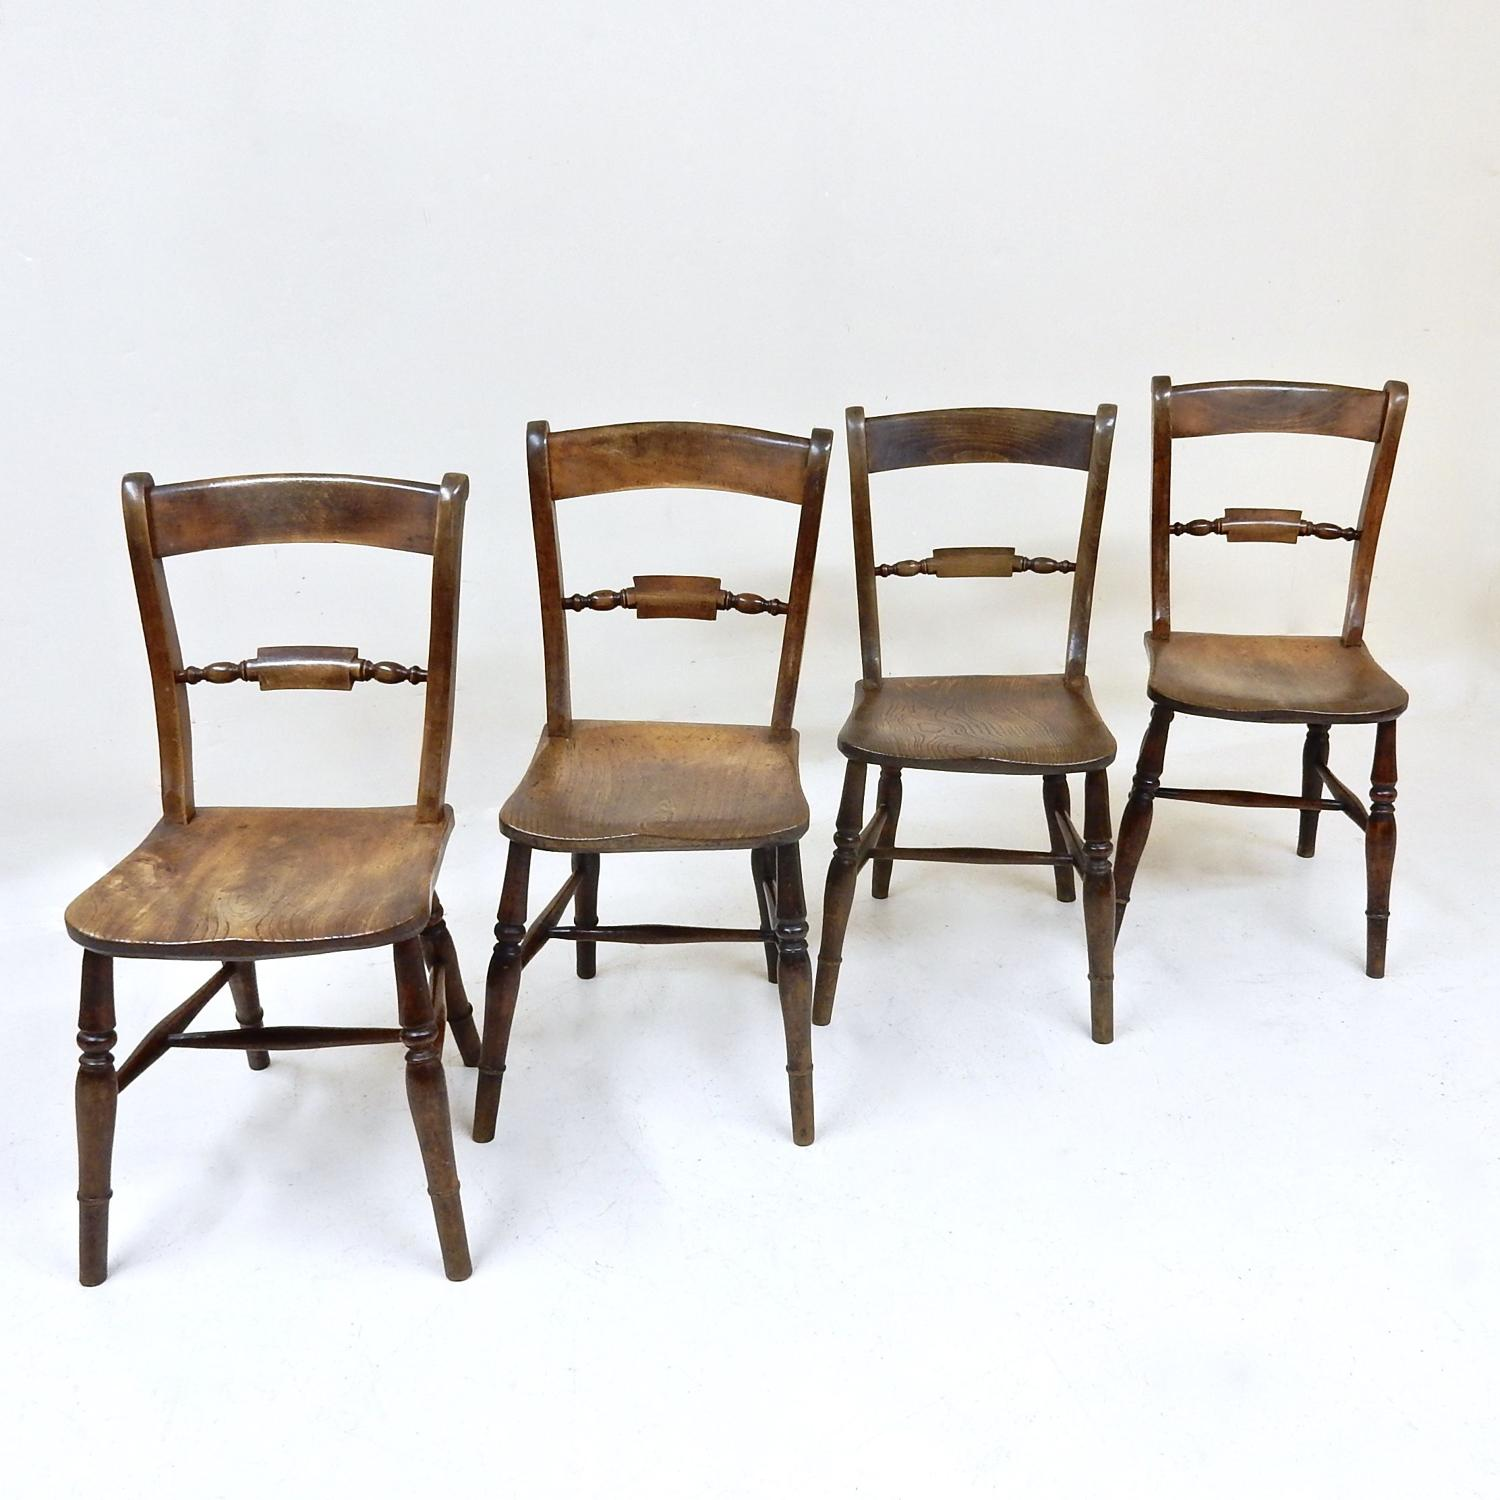 Antique Windsor Chairs (Named)